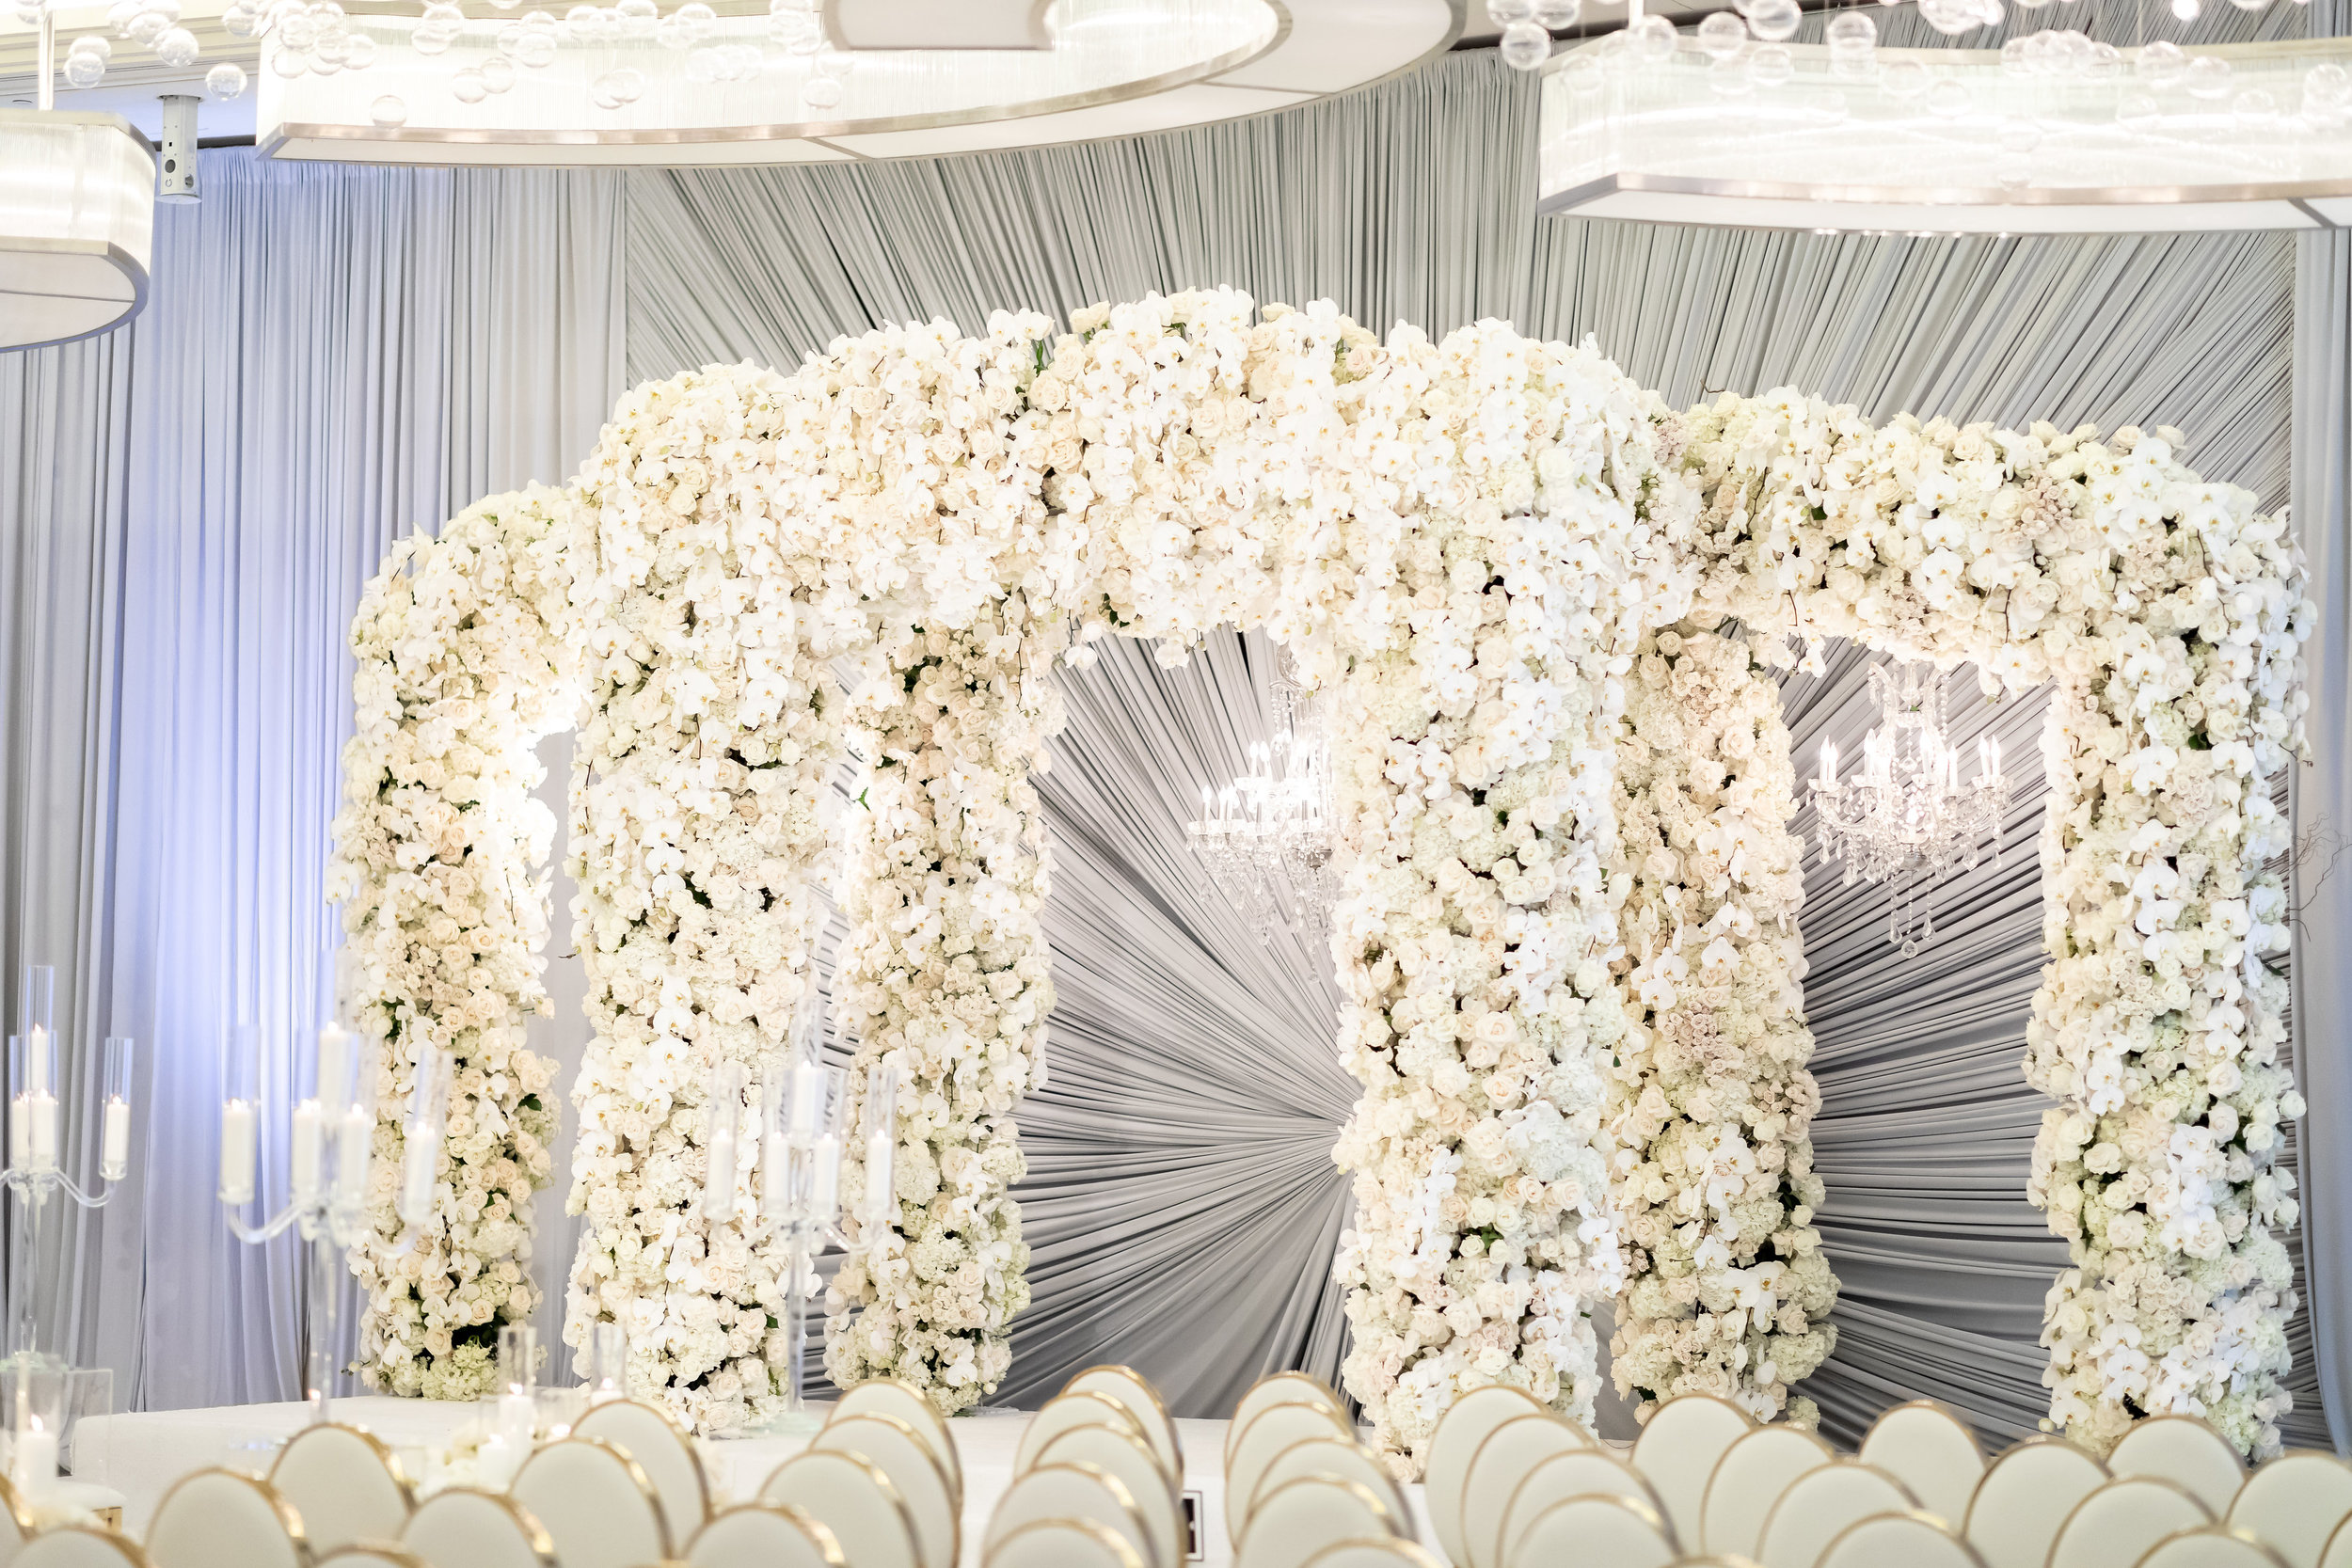 Luxury wedding ceremony in Las Vegas. White, grey, and gold celebrity wedding at Waldorf Astoria.  Designed and Produced by Las Vegas Wedding Planner Andrea Eppolito. Images by Brian Leahy.